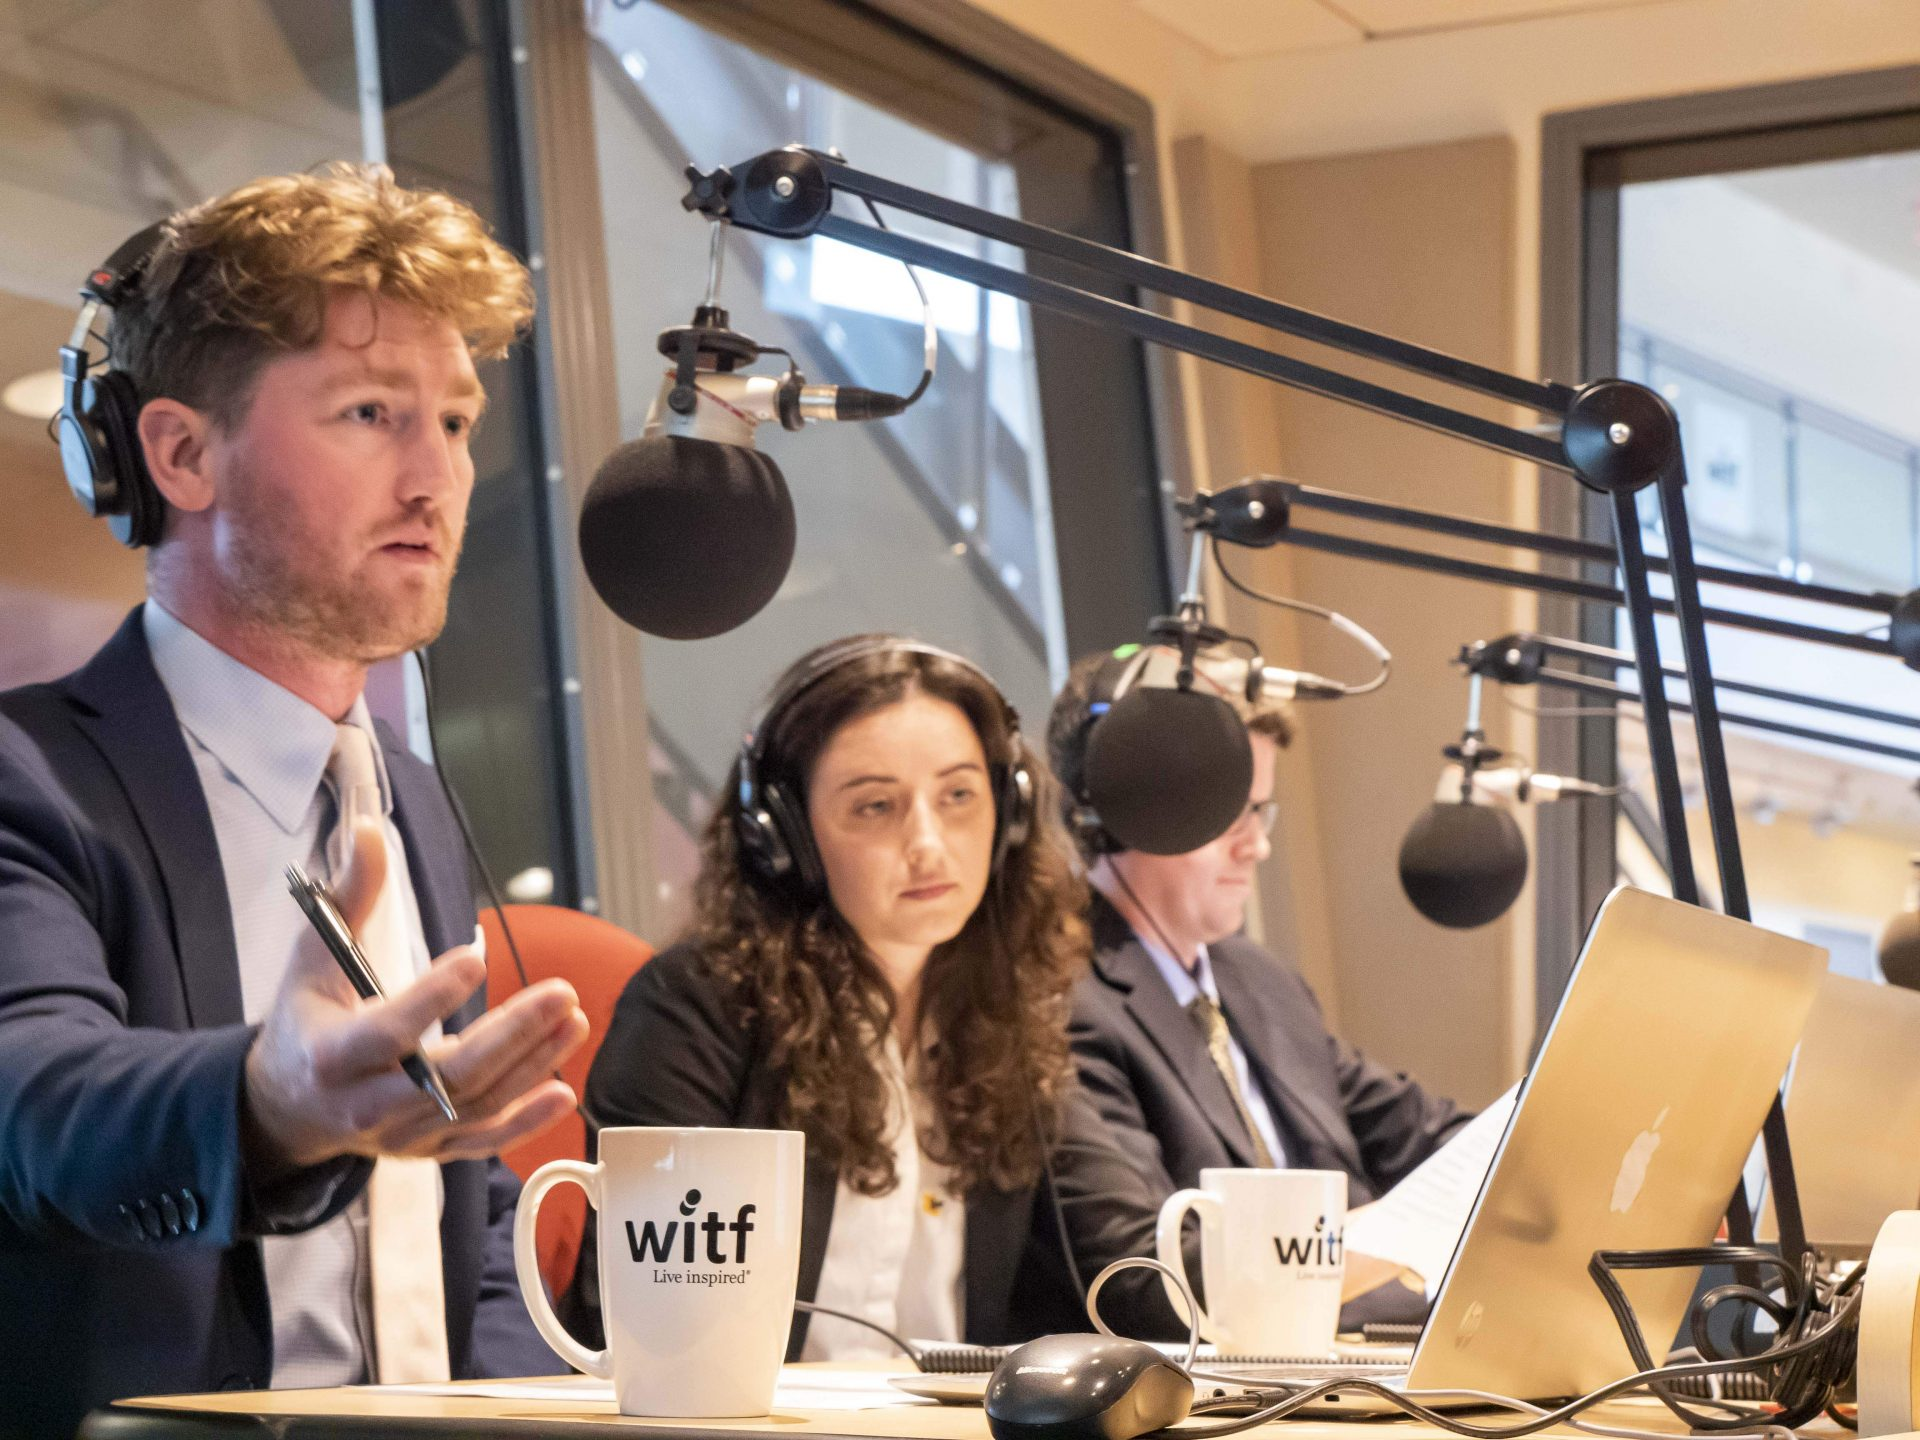 Kevin McCorry, left, asks Gov. Tom Wolf a question during an interview at WITF Public Media Center on June 20, 2019.